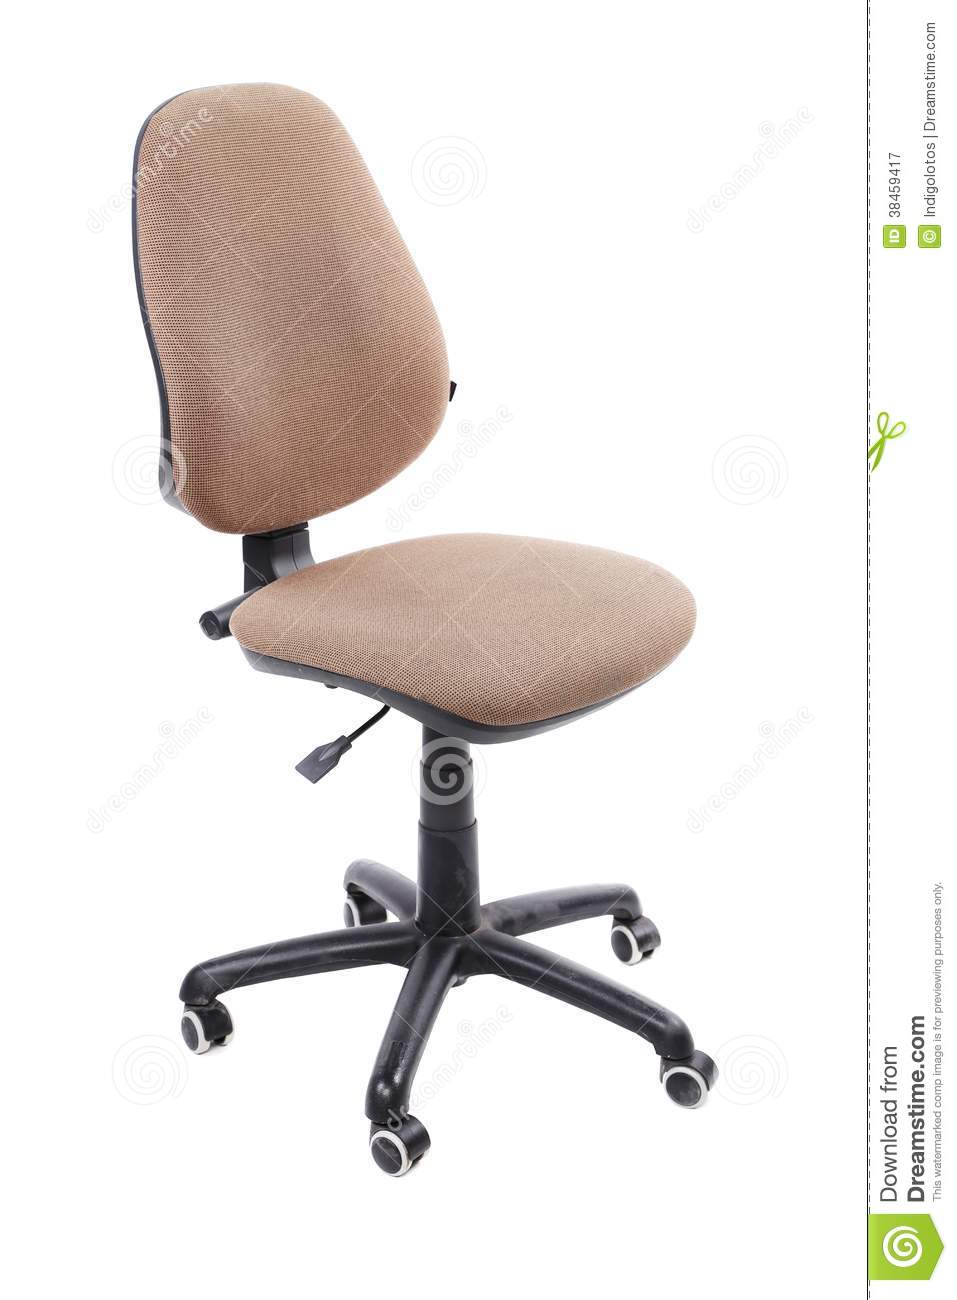 beige office chair close up. royalty free stock photography